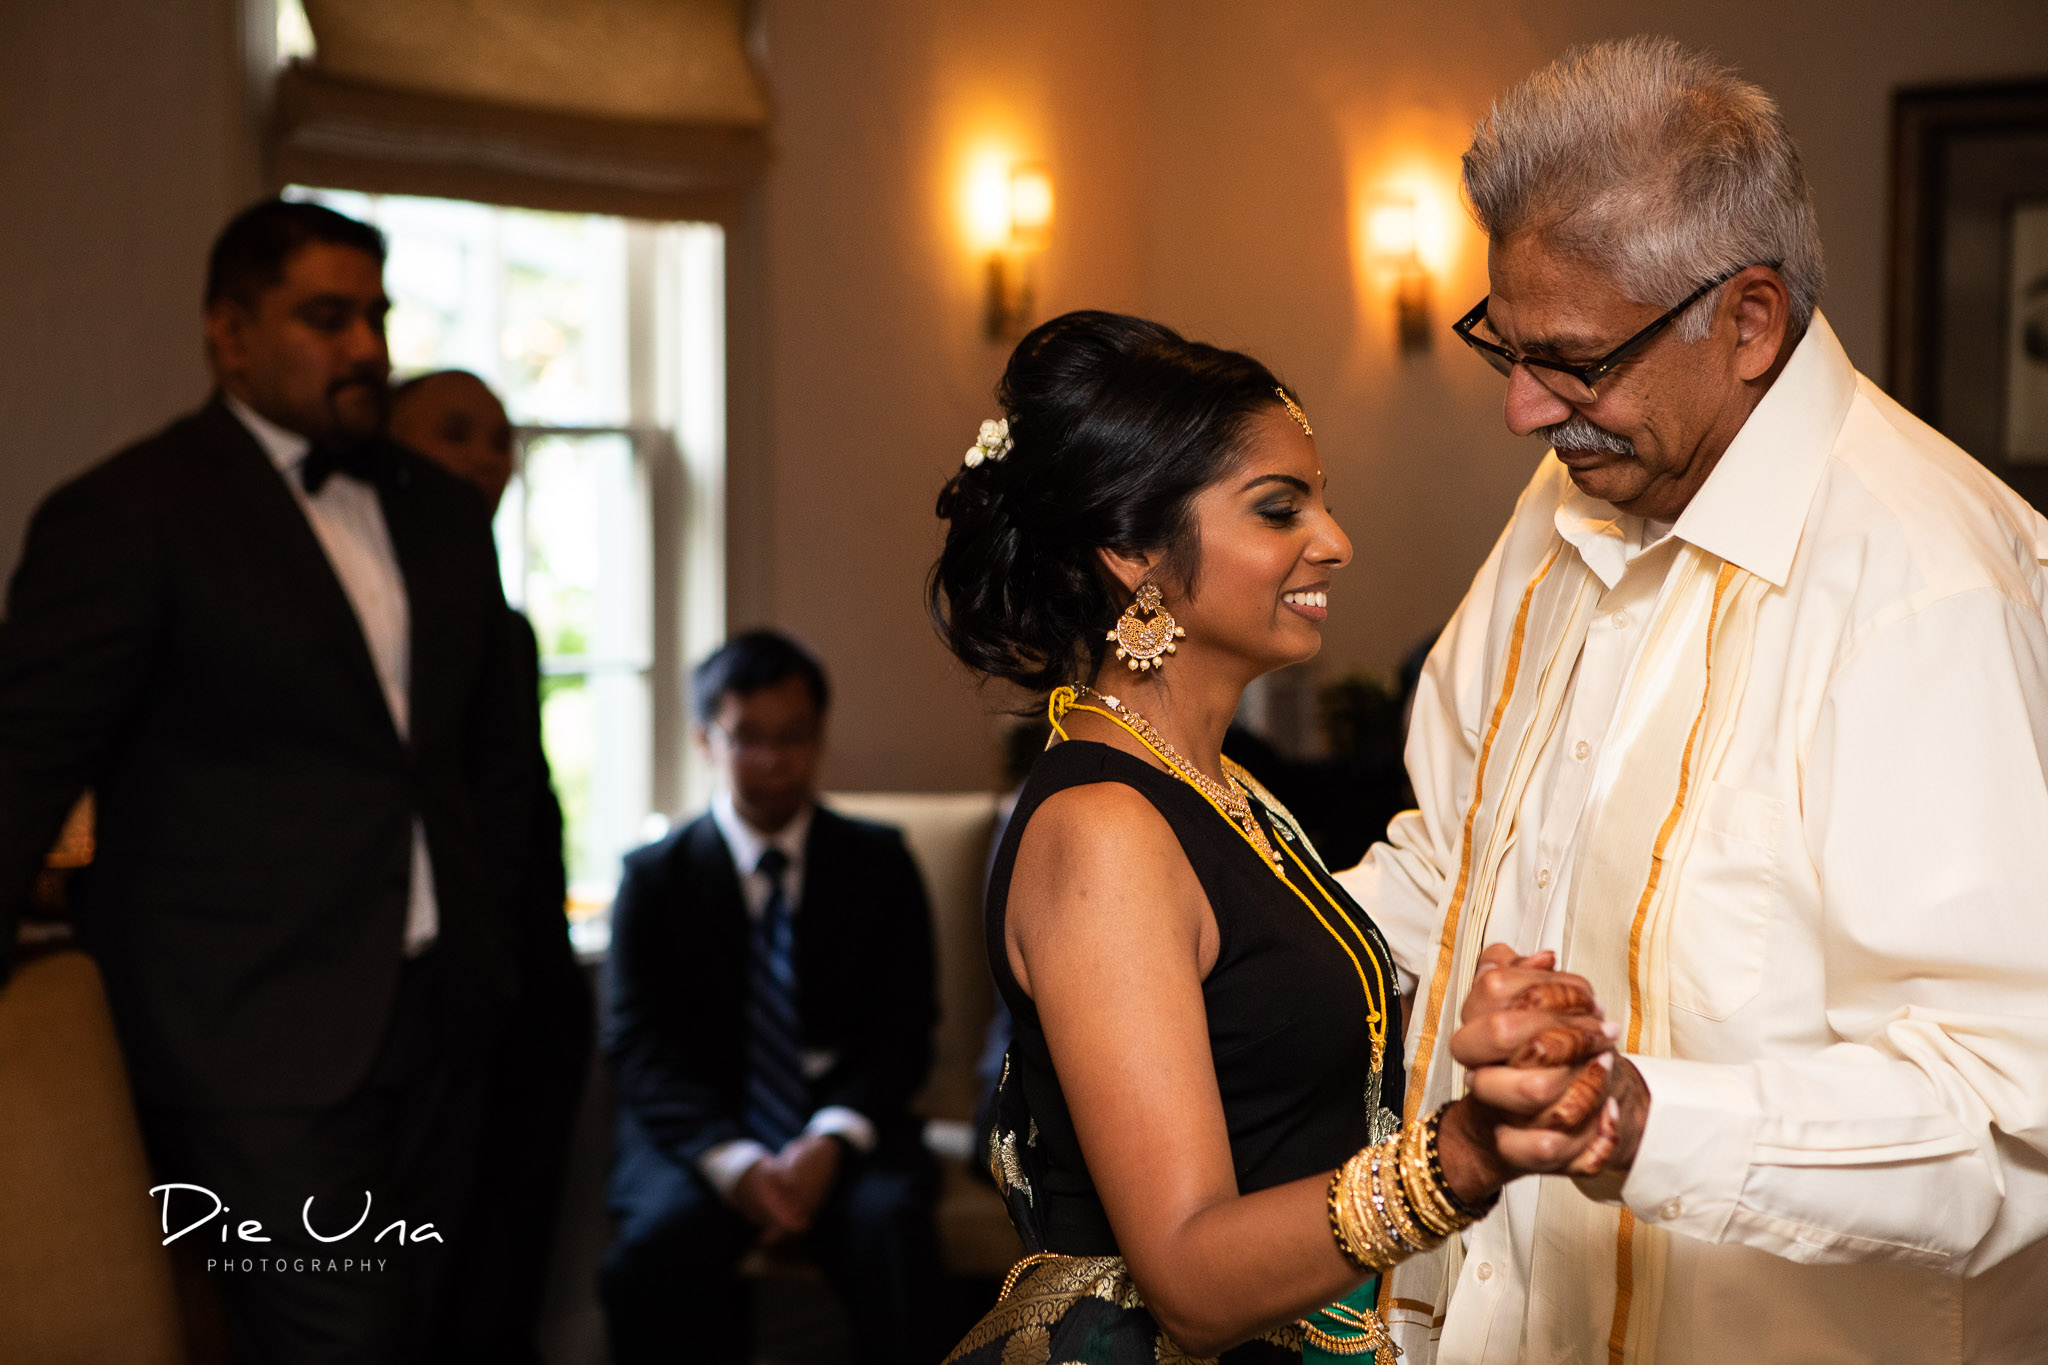 father and daughter dance at Sri Lankan wedding.jpg